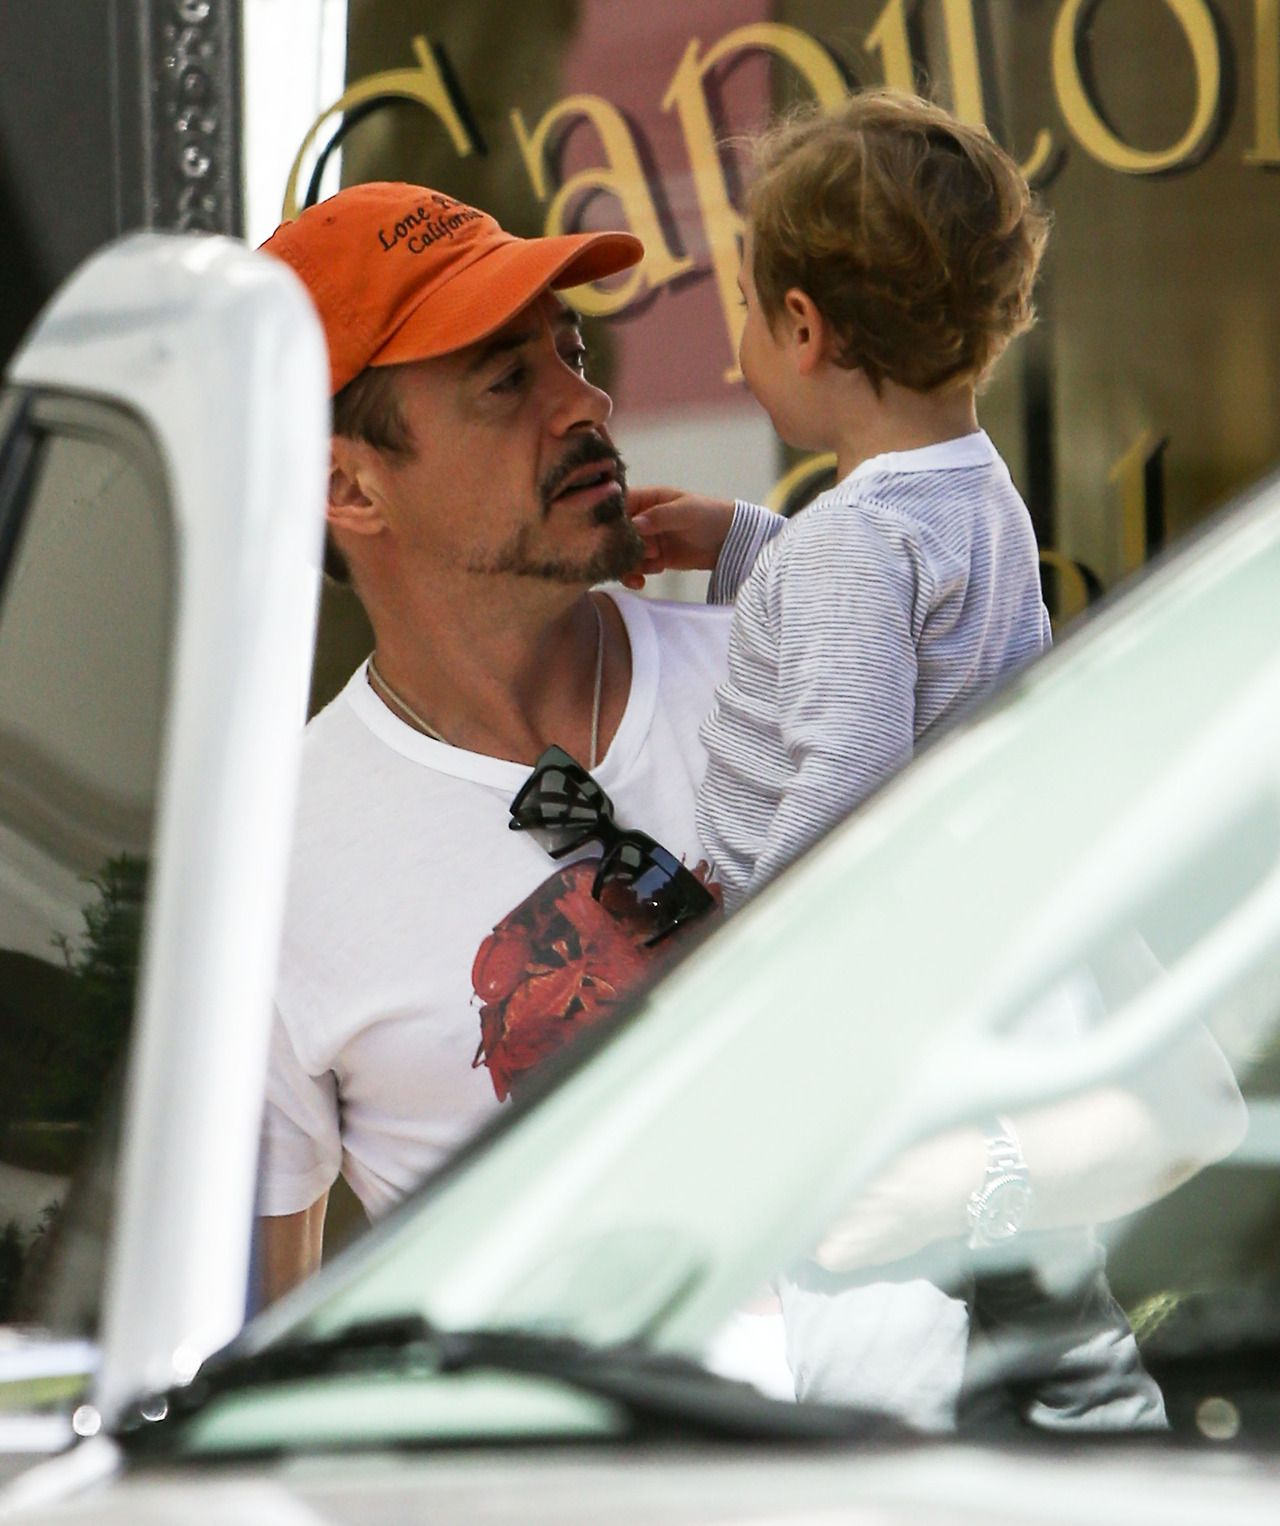 Robert Downey Jr Kids: Robert Downey Jr. And His Son Exton, Out And About In